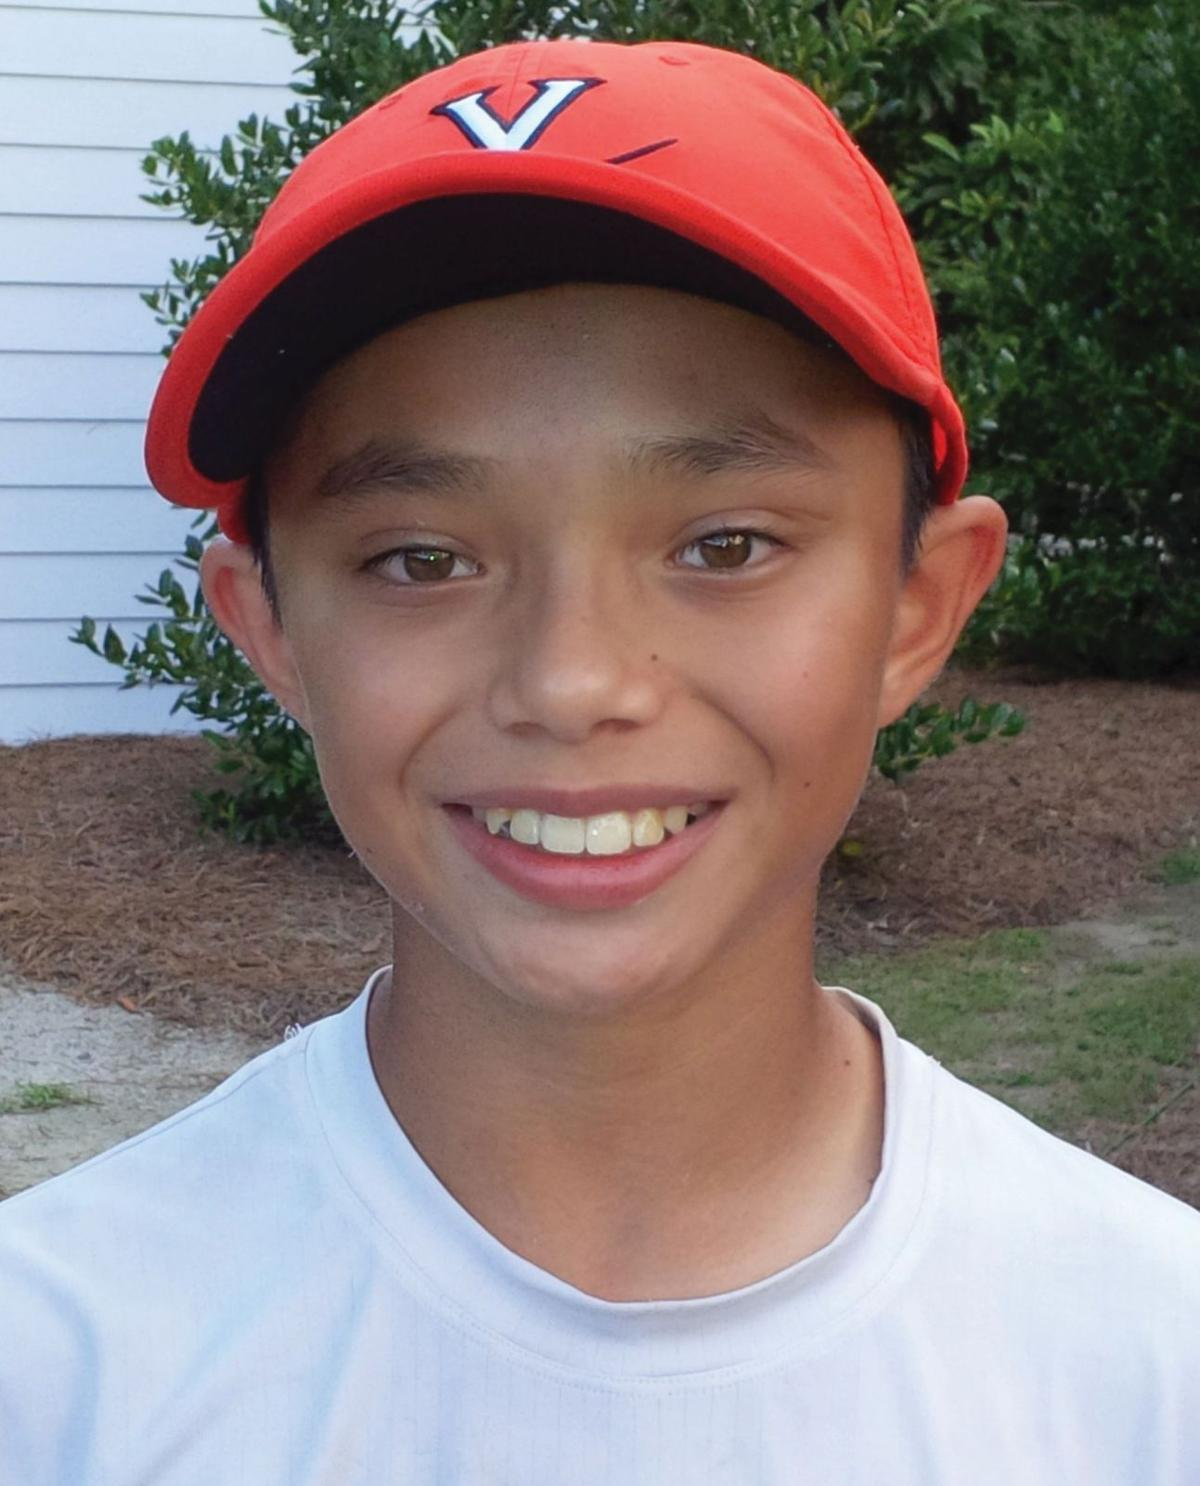 Seattle lefty advances at Boys 12 clay court nationals